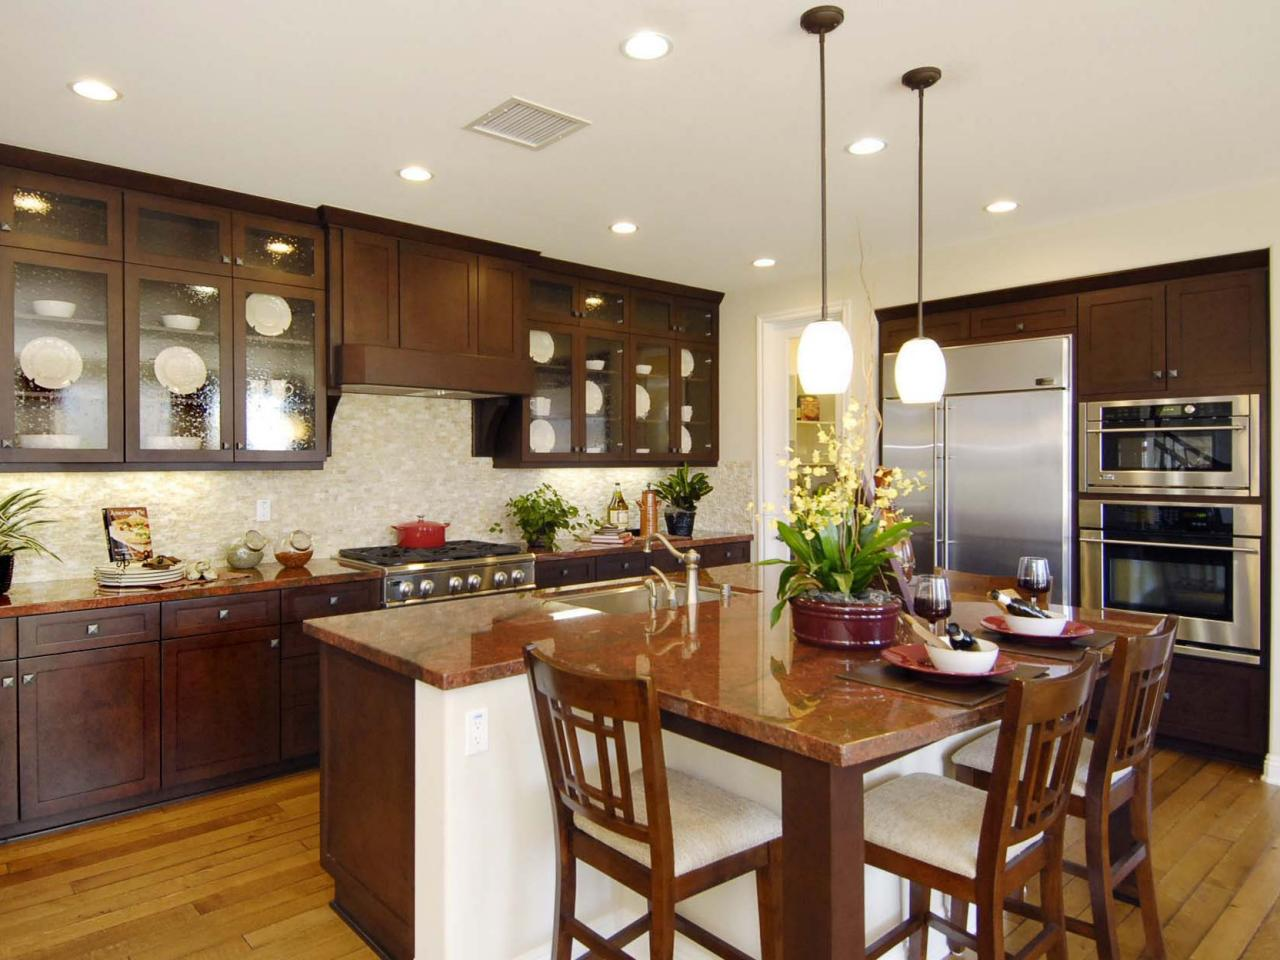 modern kitchen islands kitchen designs choose kitchen layouts remodeling materials hgtv